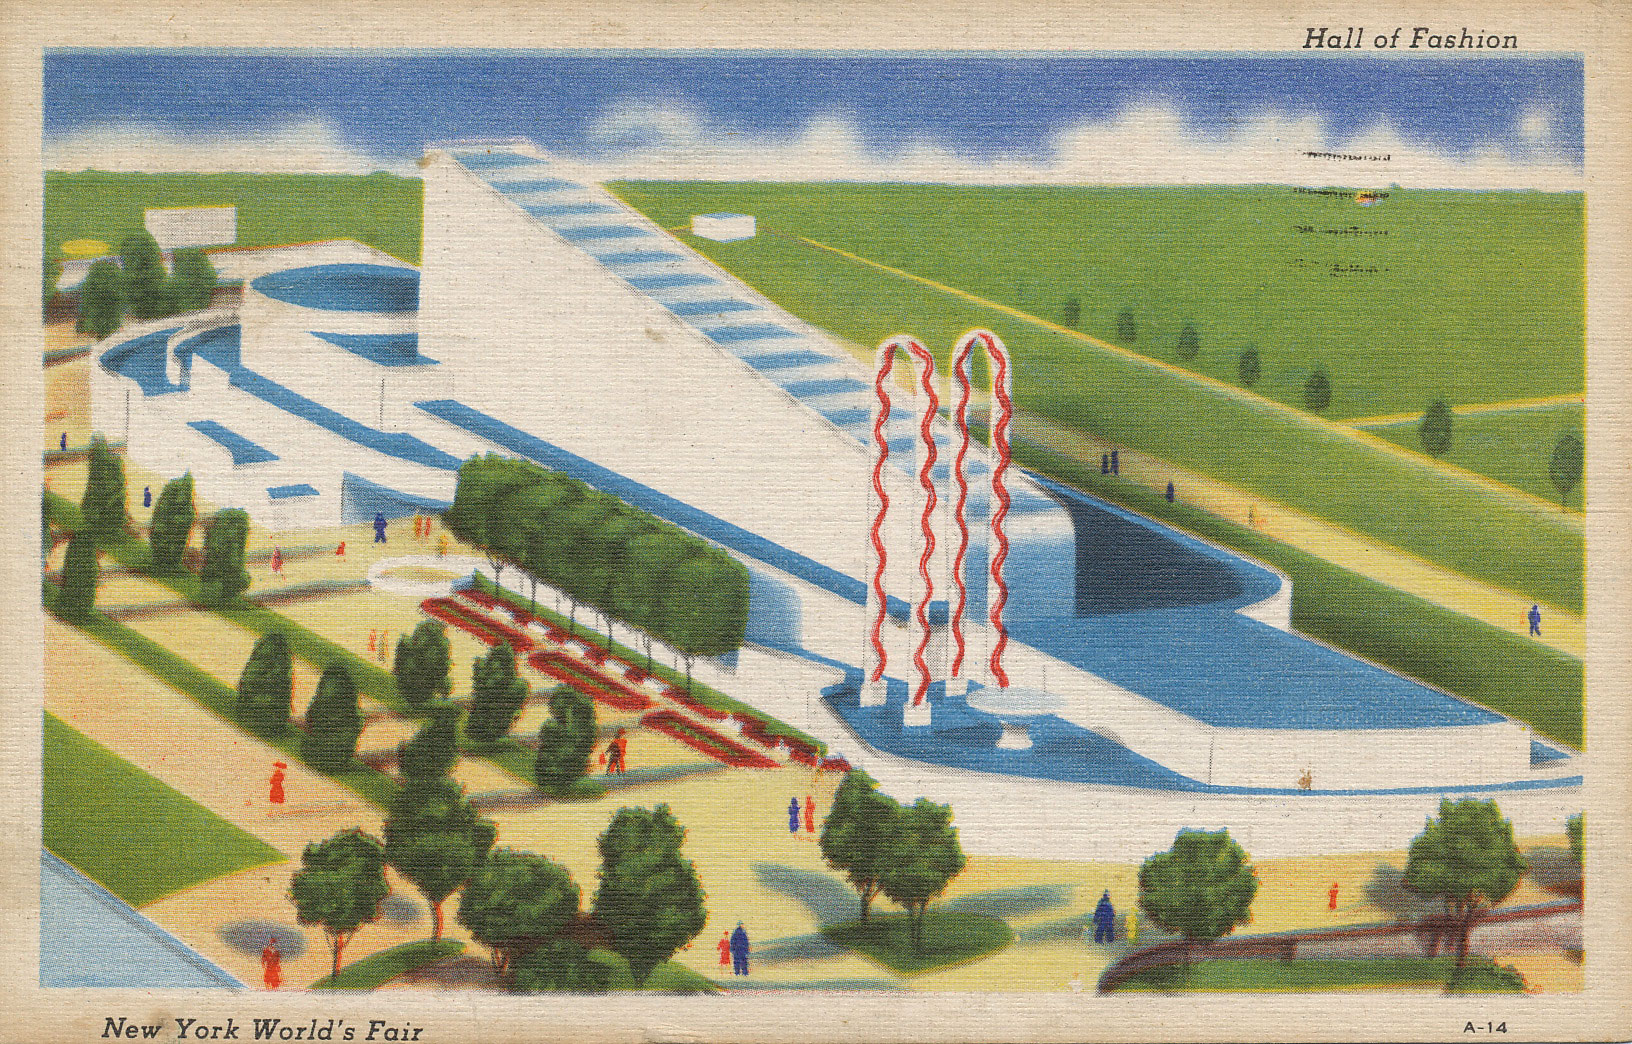 http://jrandomimage.com/images/worlds-fair-1939-hall-of-fashion.jpg